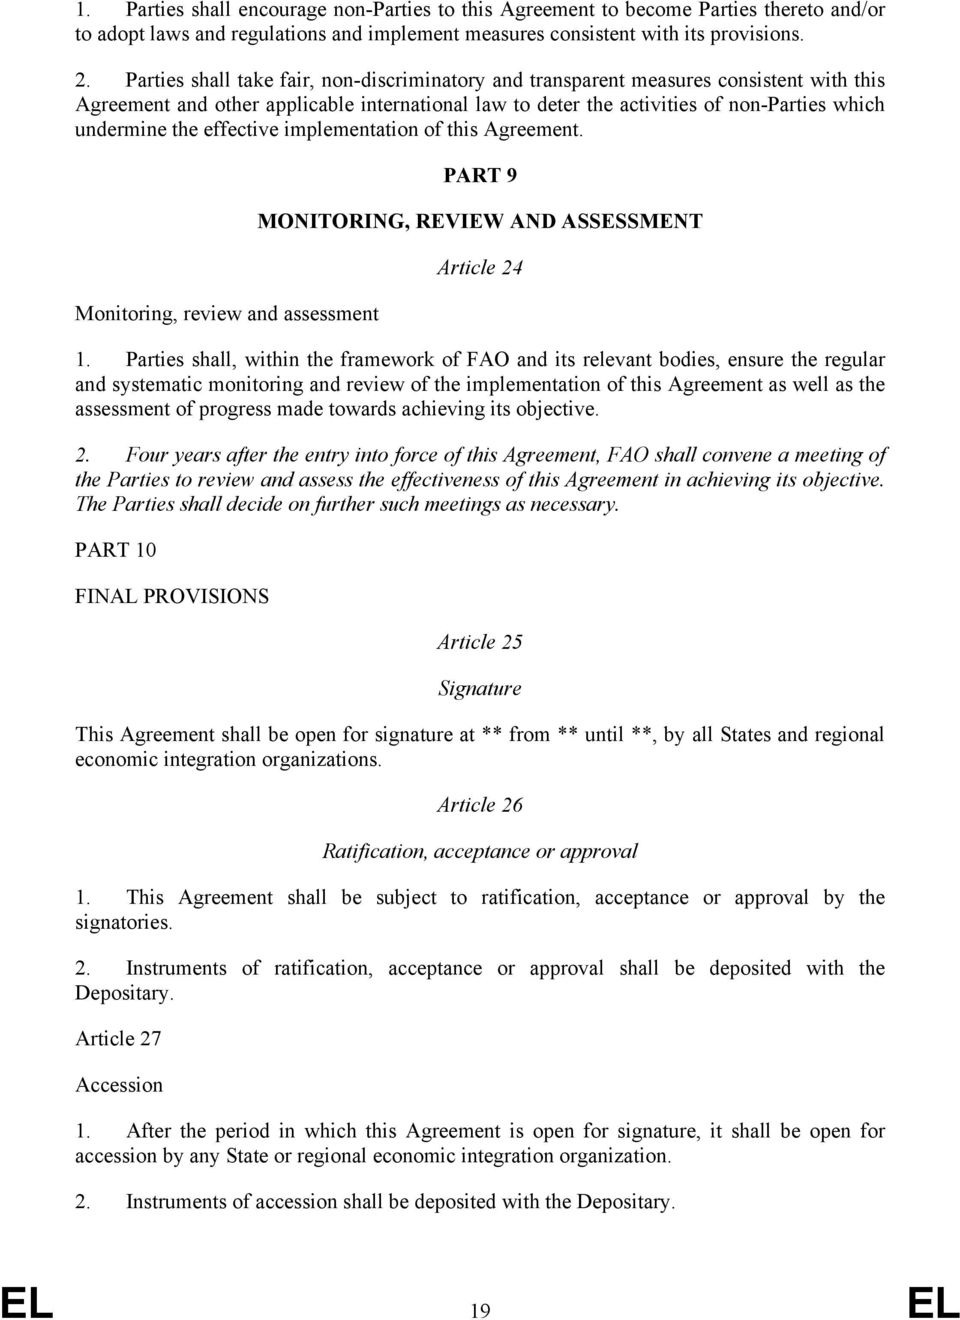 effective implementation of this Agreement. Monitoring, review and assessment PART 9 MONITORING, REVIEW AND ASSESSMENT Article 24 1.